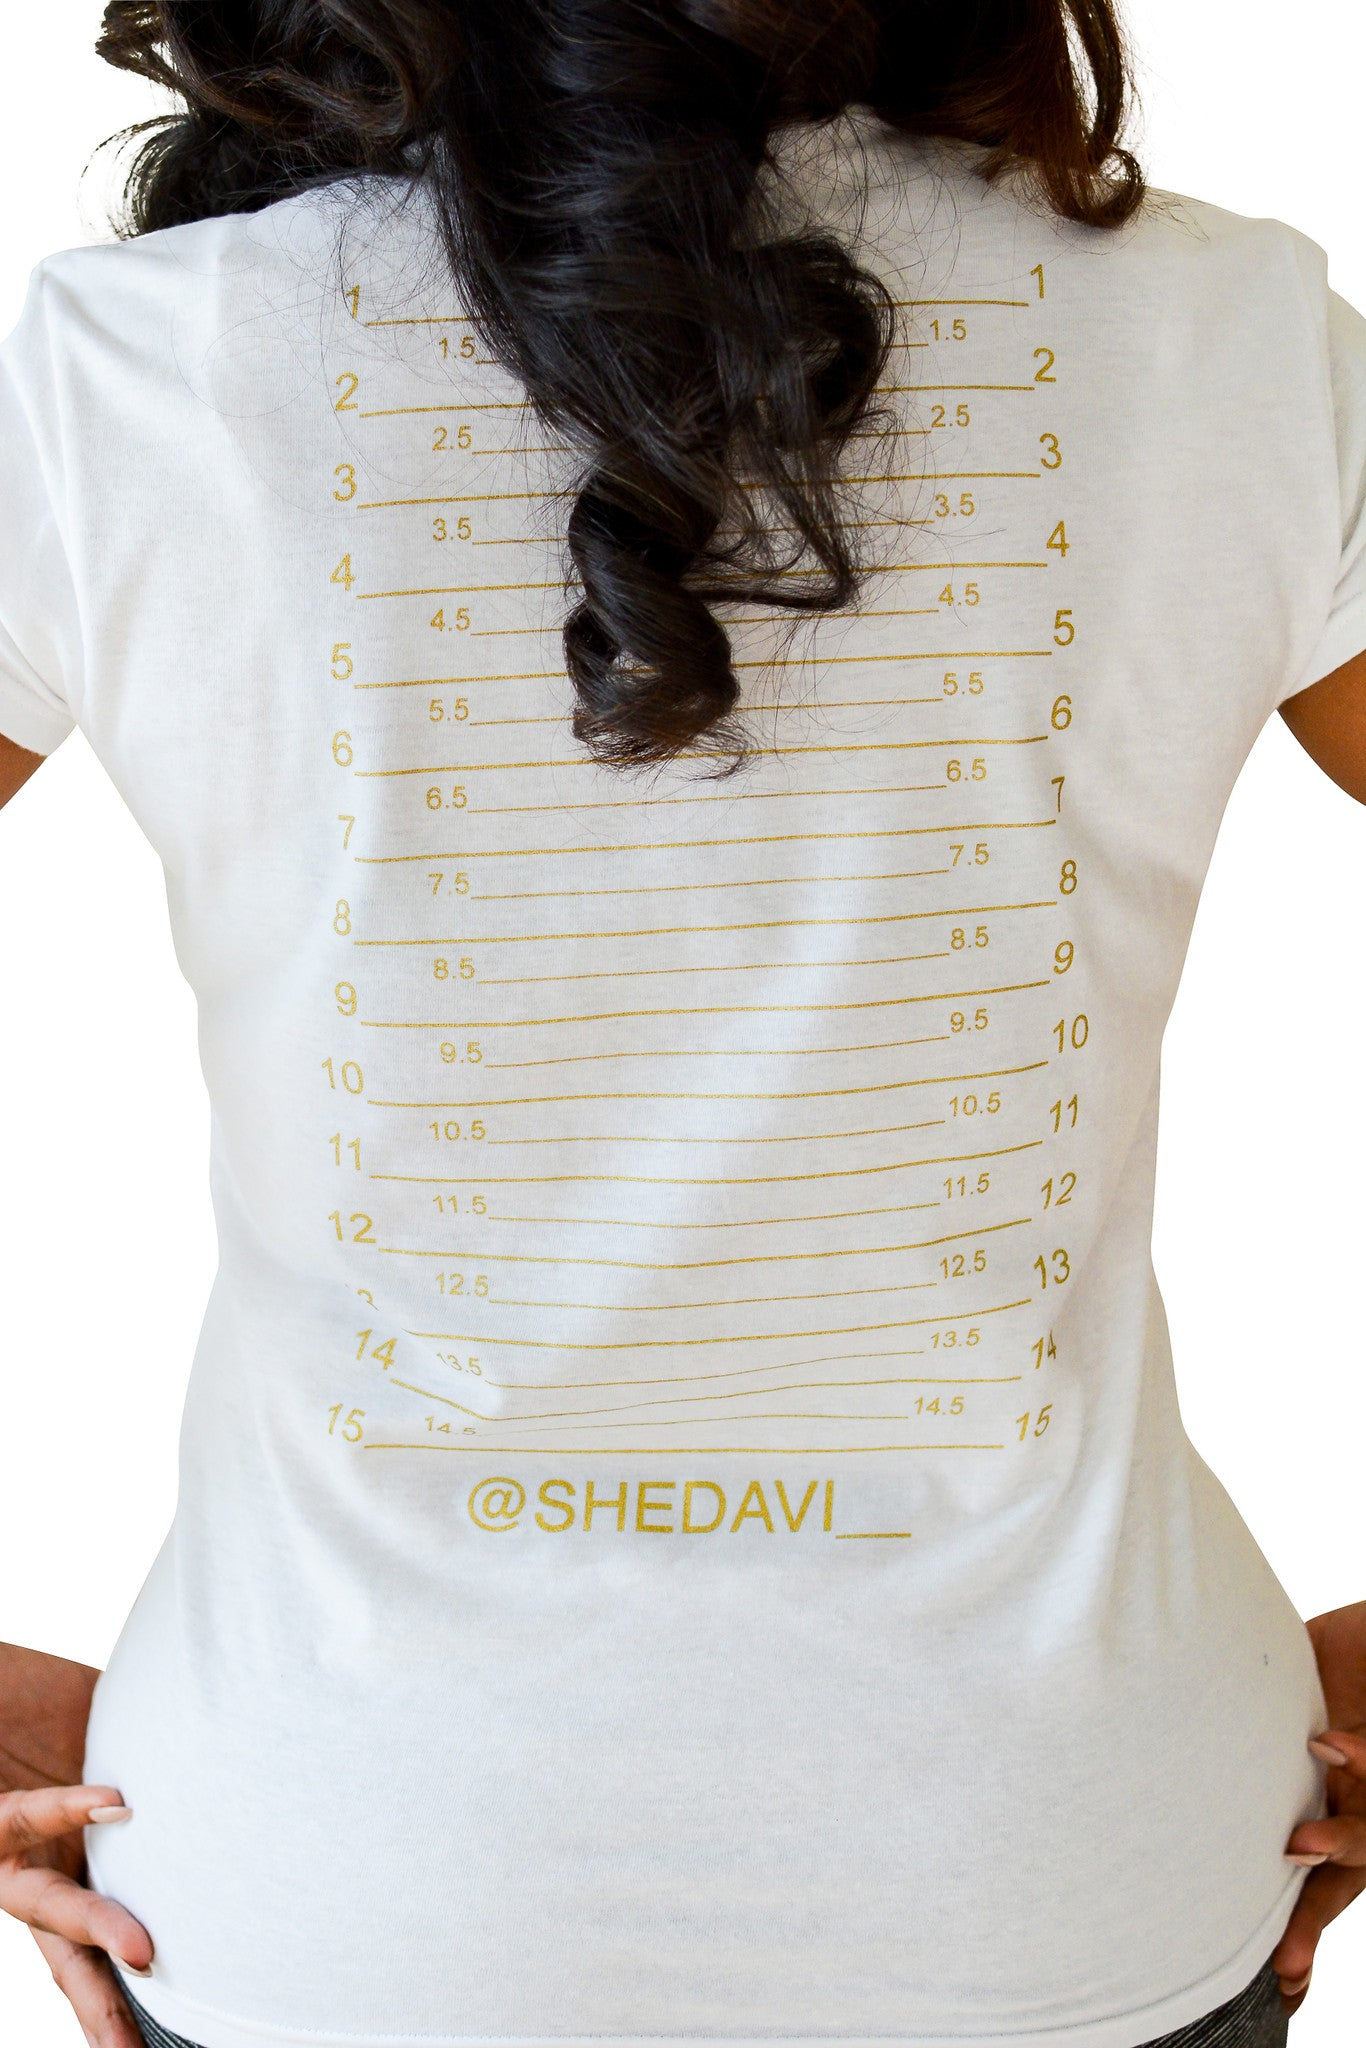 Hair Length Check T-Shirt - Hair Growth Chart Marker – Shedavi